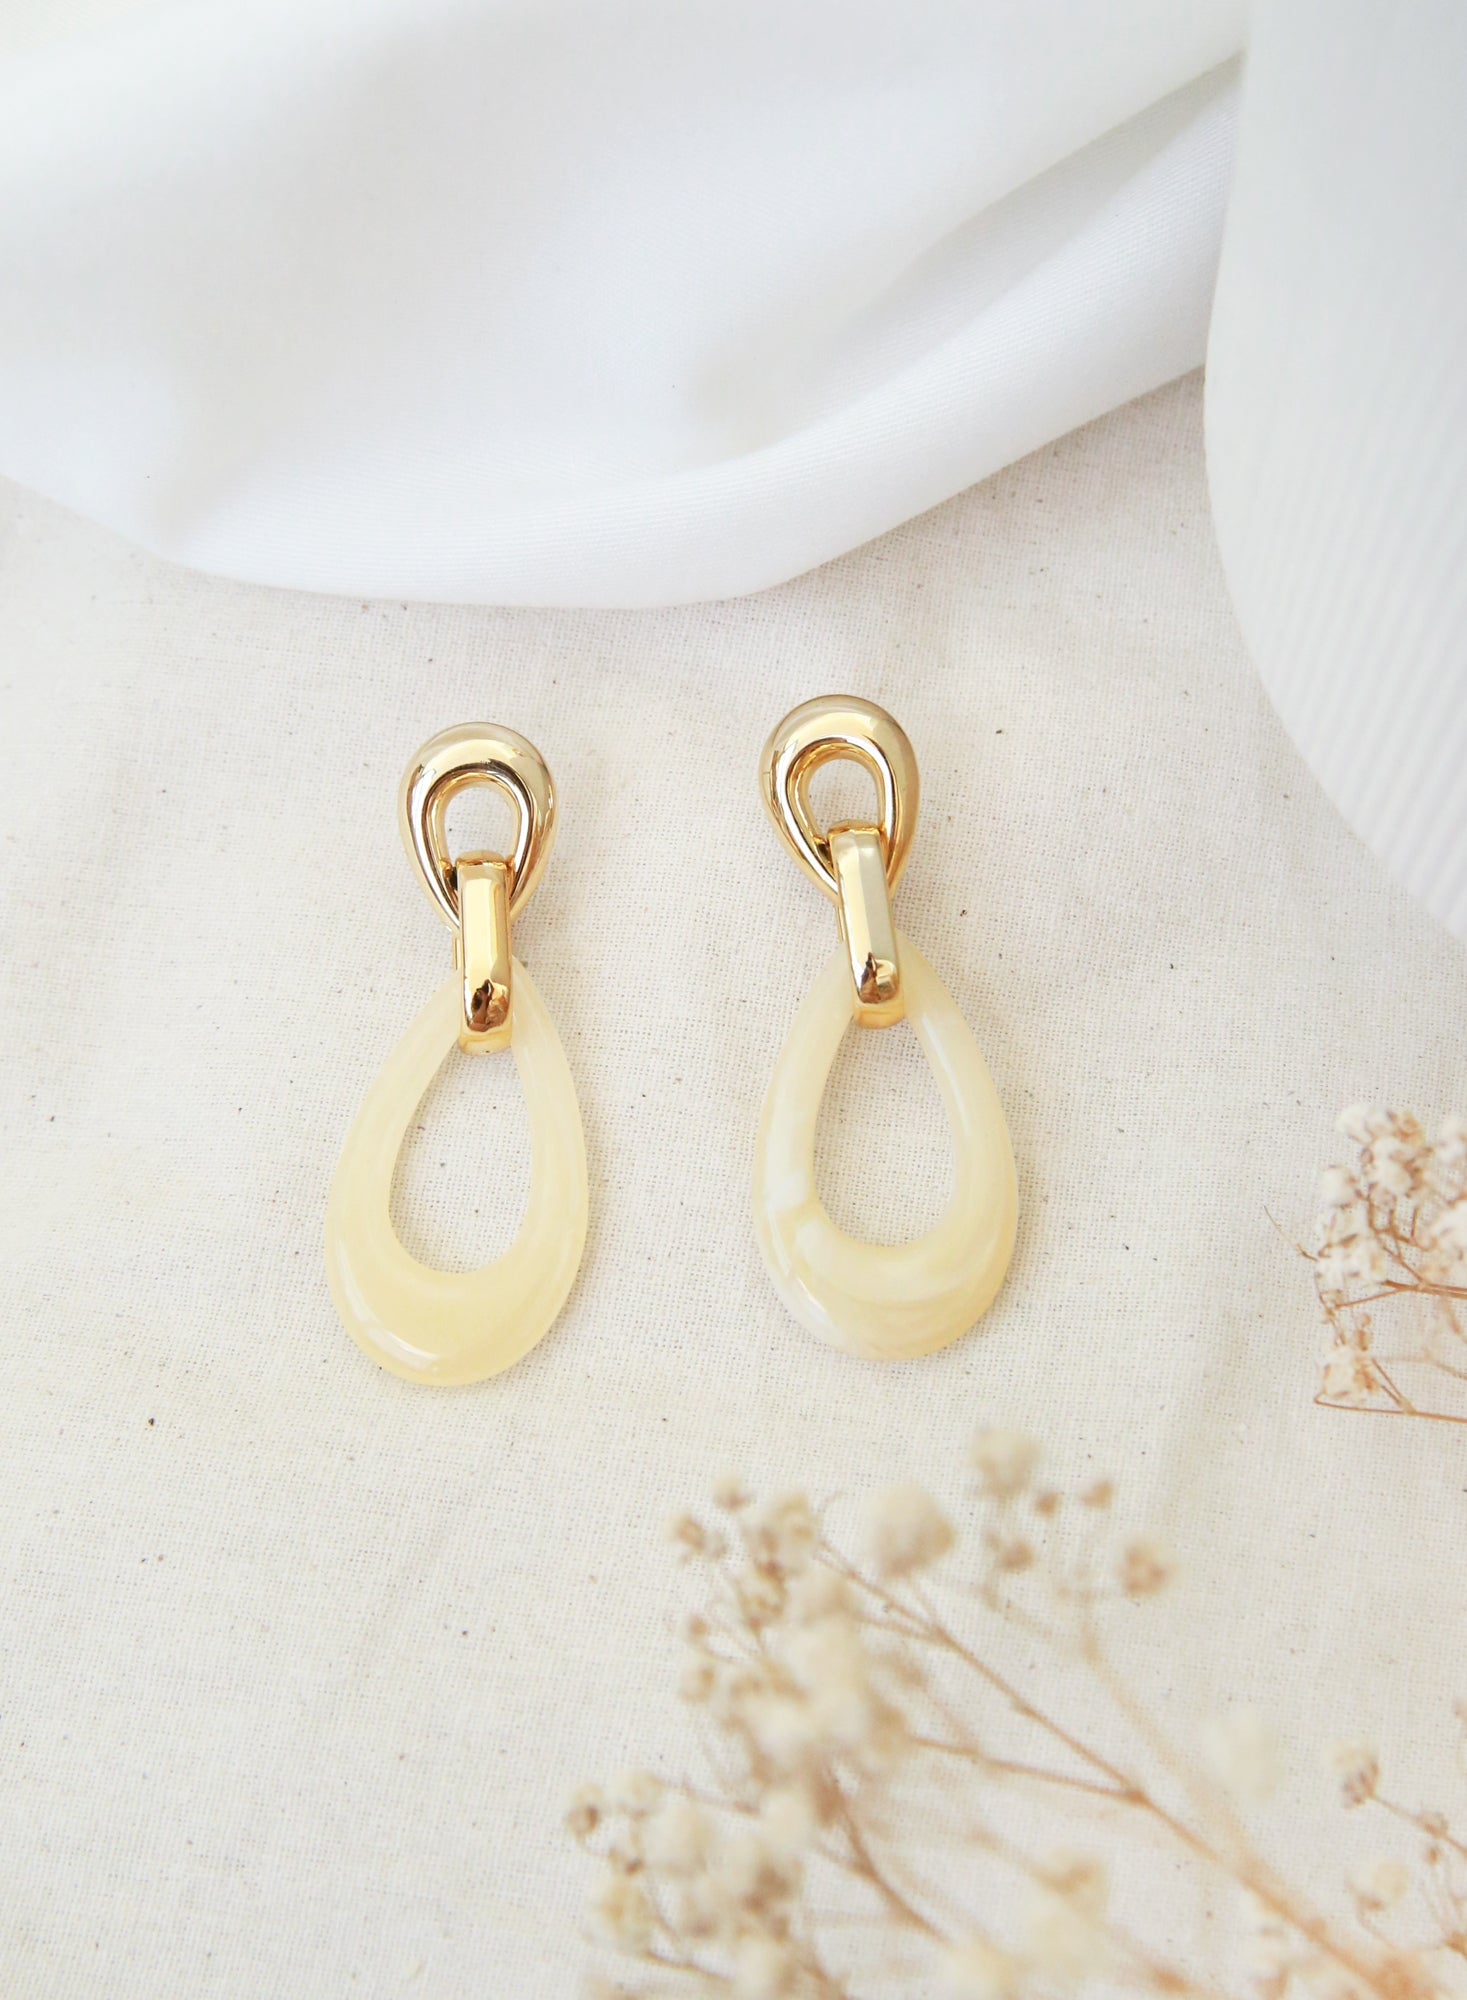 Ivory Stone Resin Gold Earrings at $ 24.00 only sold at And Well Dressed Online Fashion Store Singapore